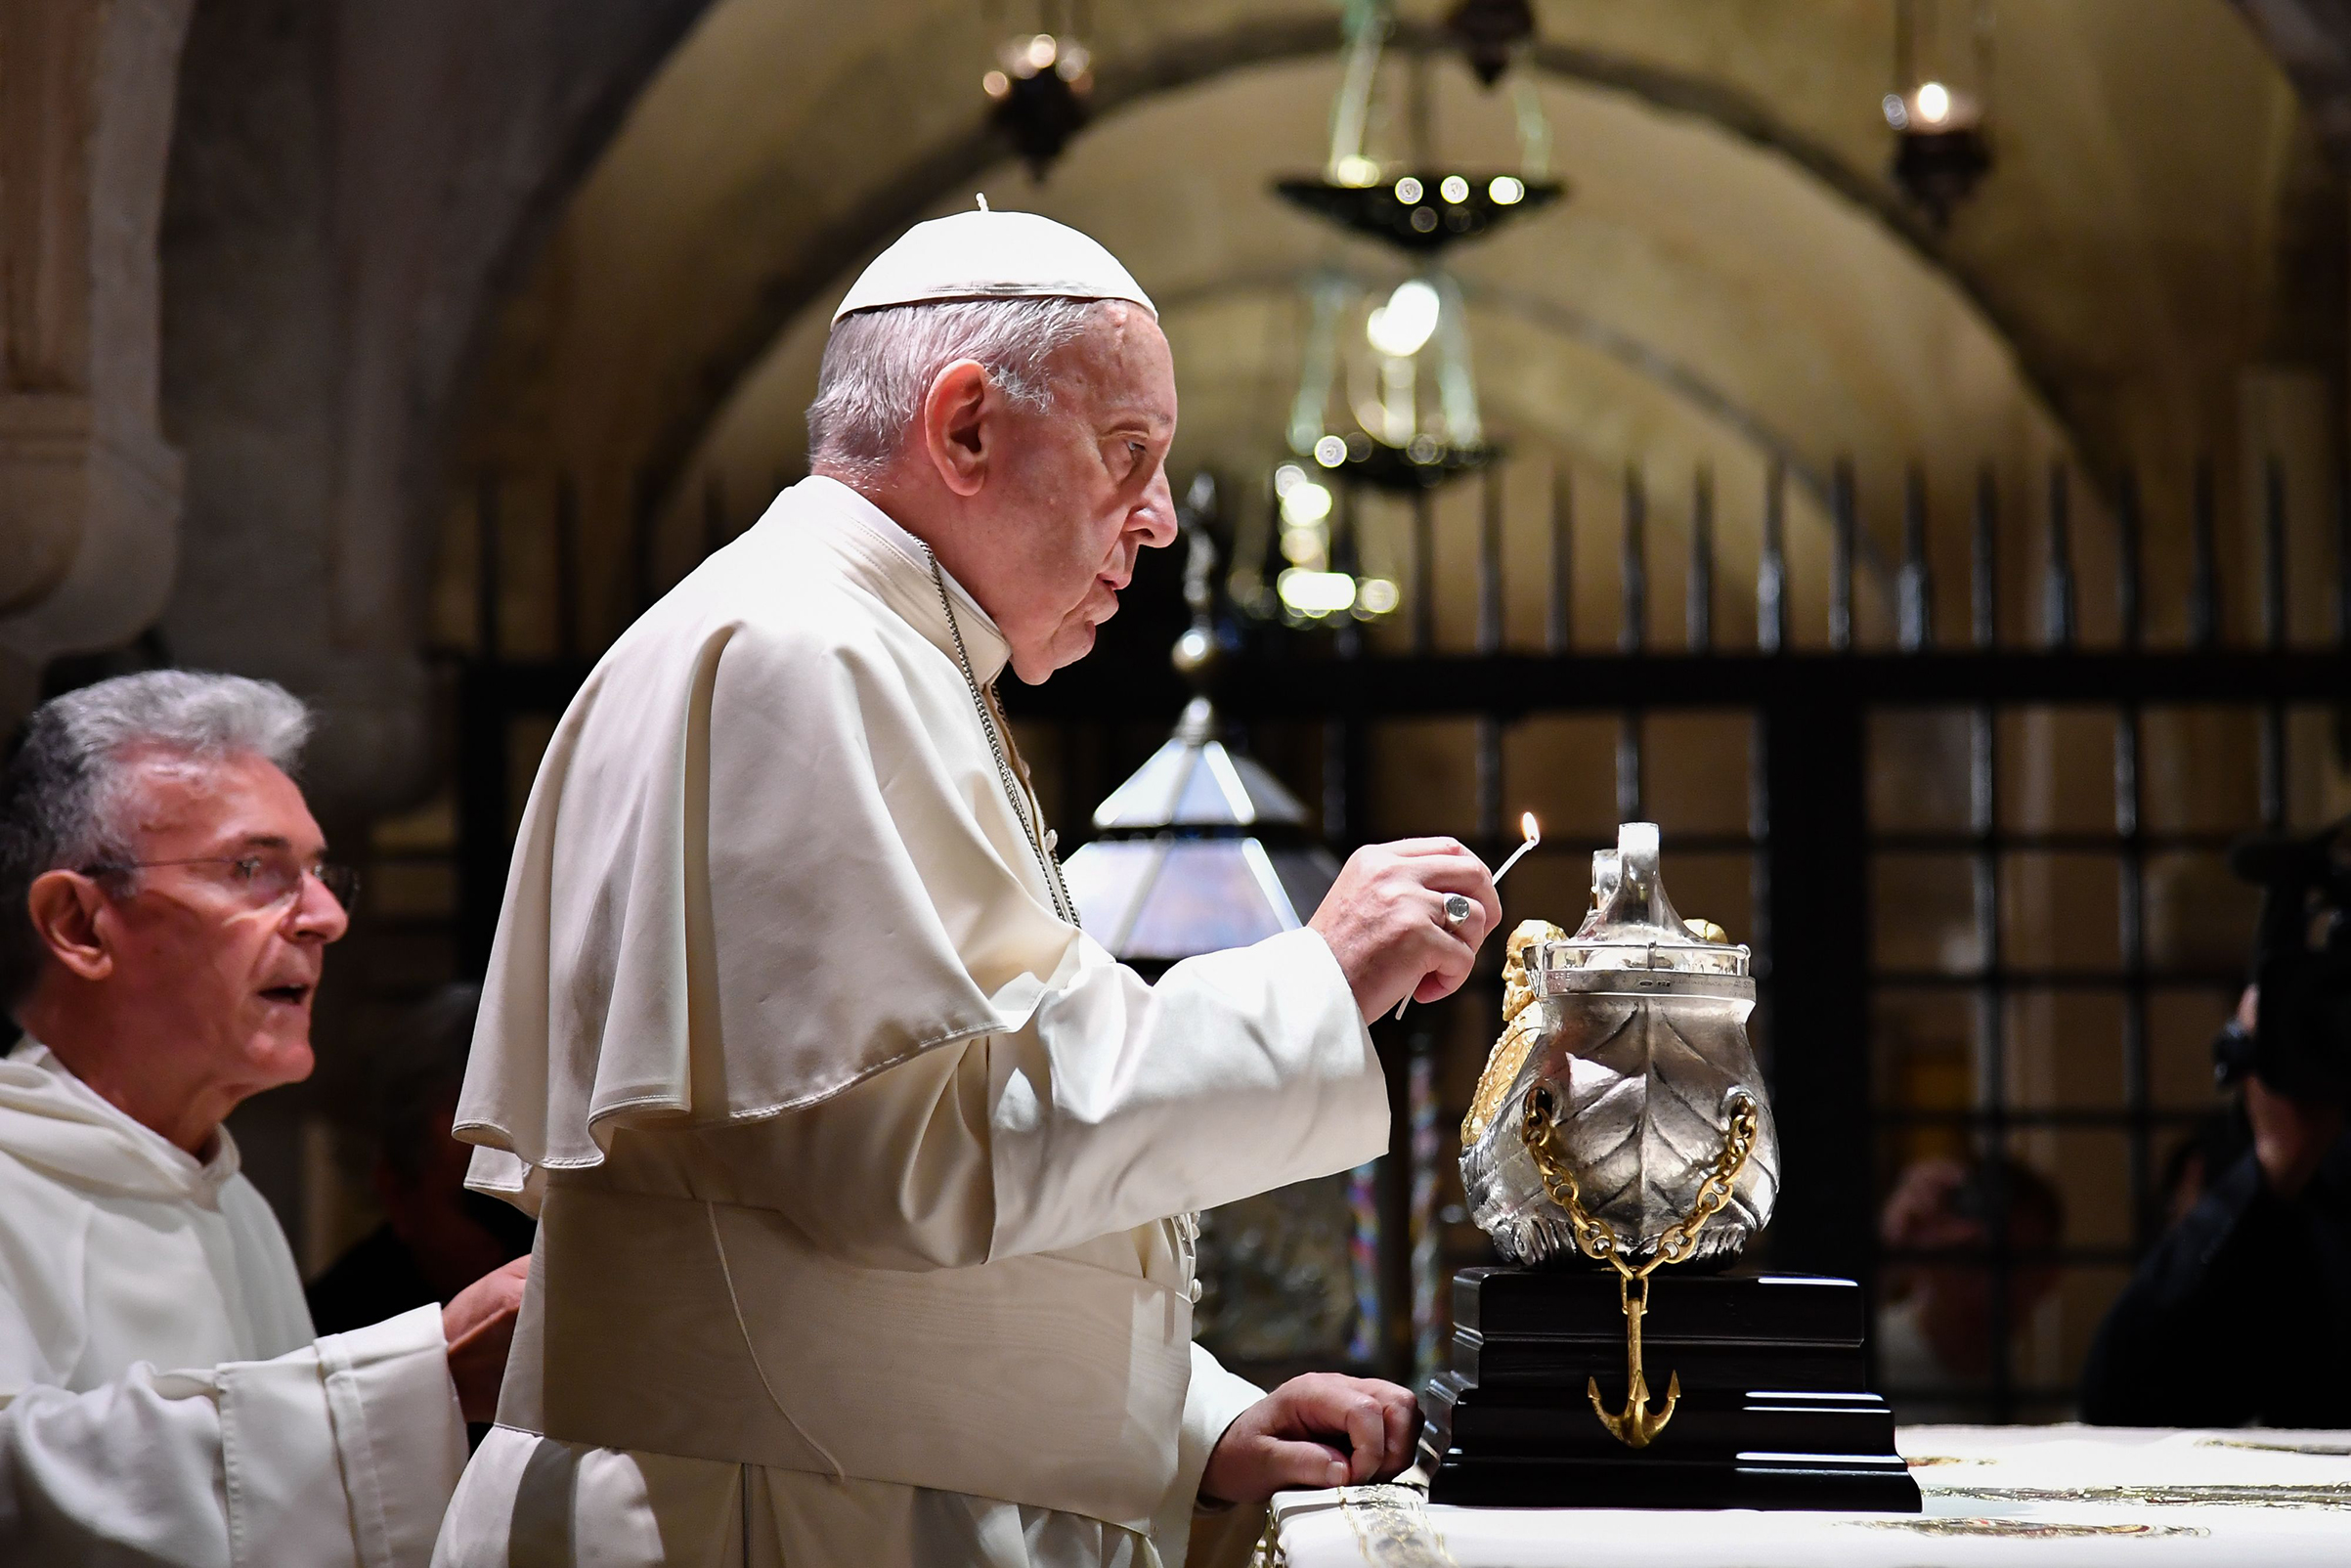 Pope Francis lights the uniflamma lamp at the tomb of Saint Nicholas in Pontifical Basilica of St Nicholas in Bari, Italy, on July 7, 2018.